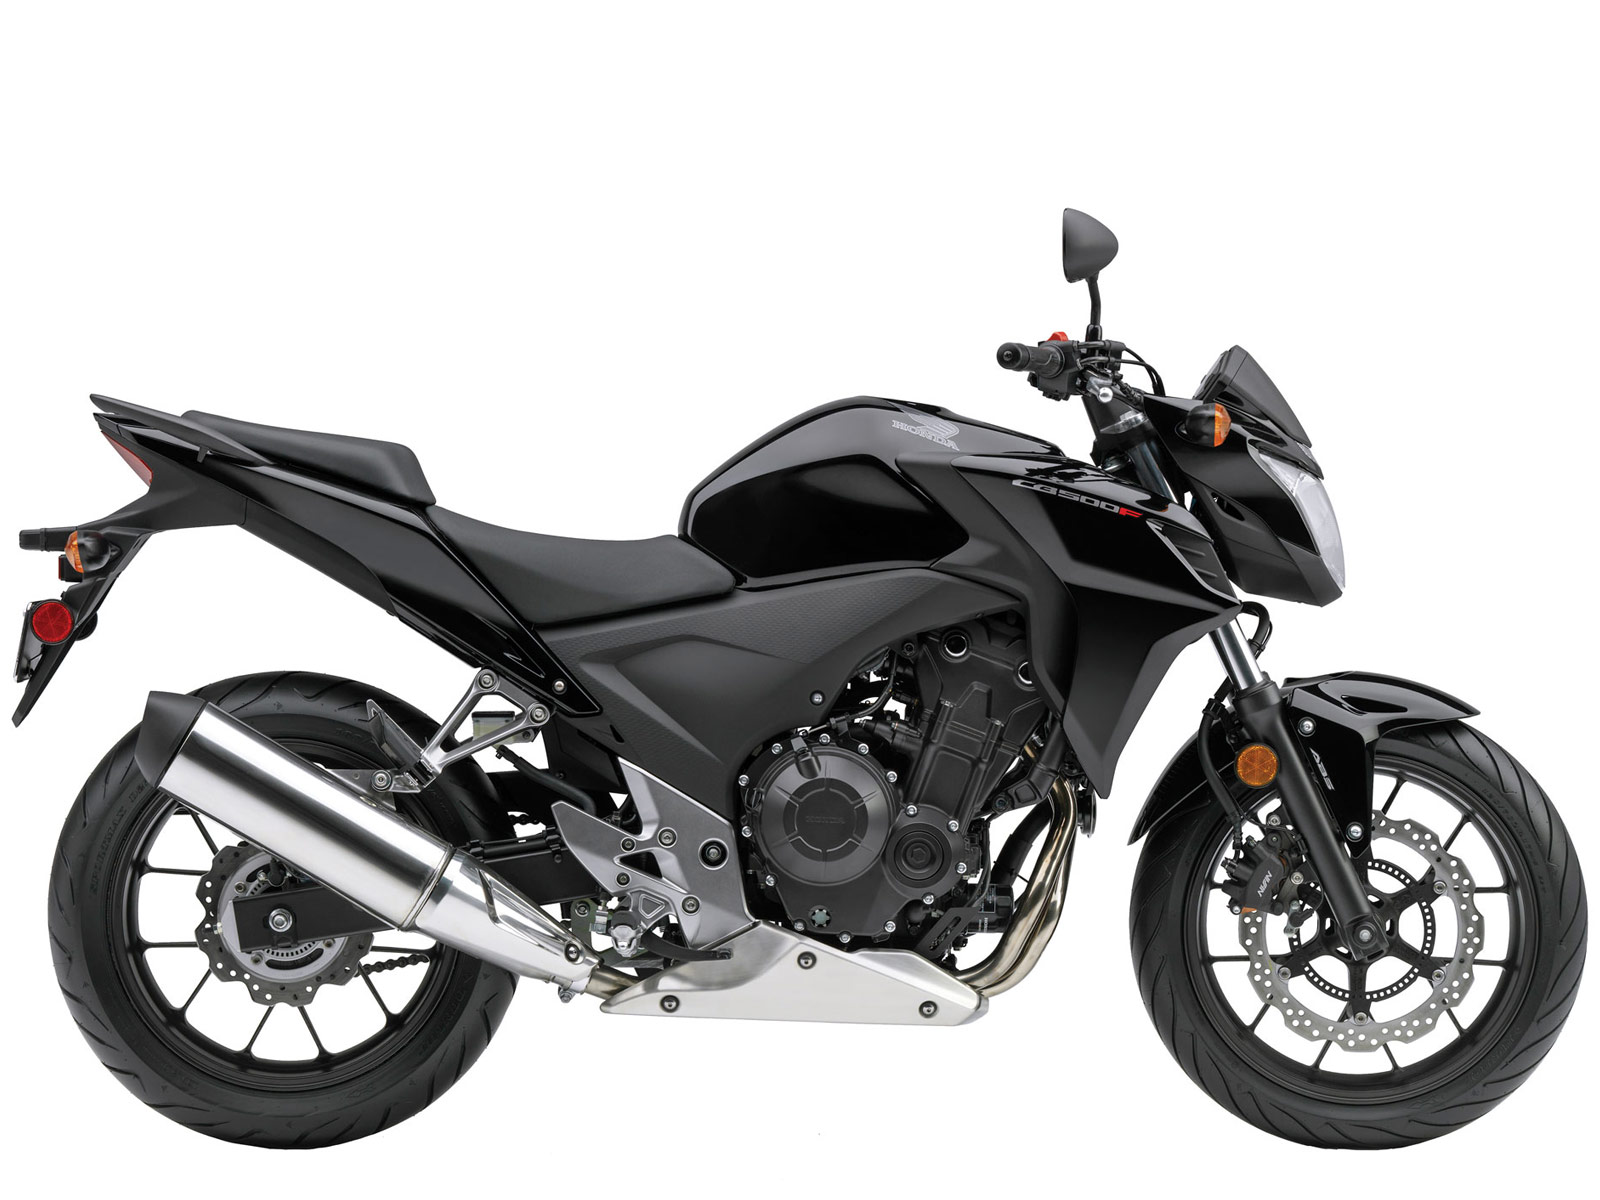 CB500F ABS | 2013 Honda Motorcycle photos and specificationsHonda Superbike 2013 Wallpaper